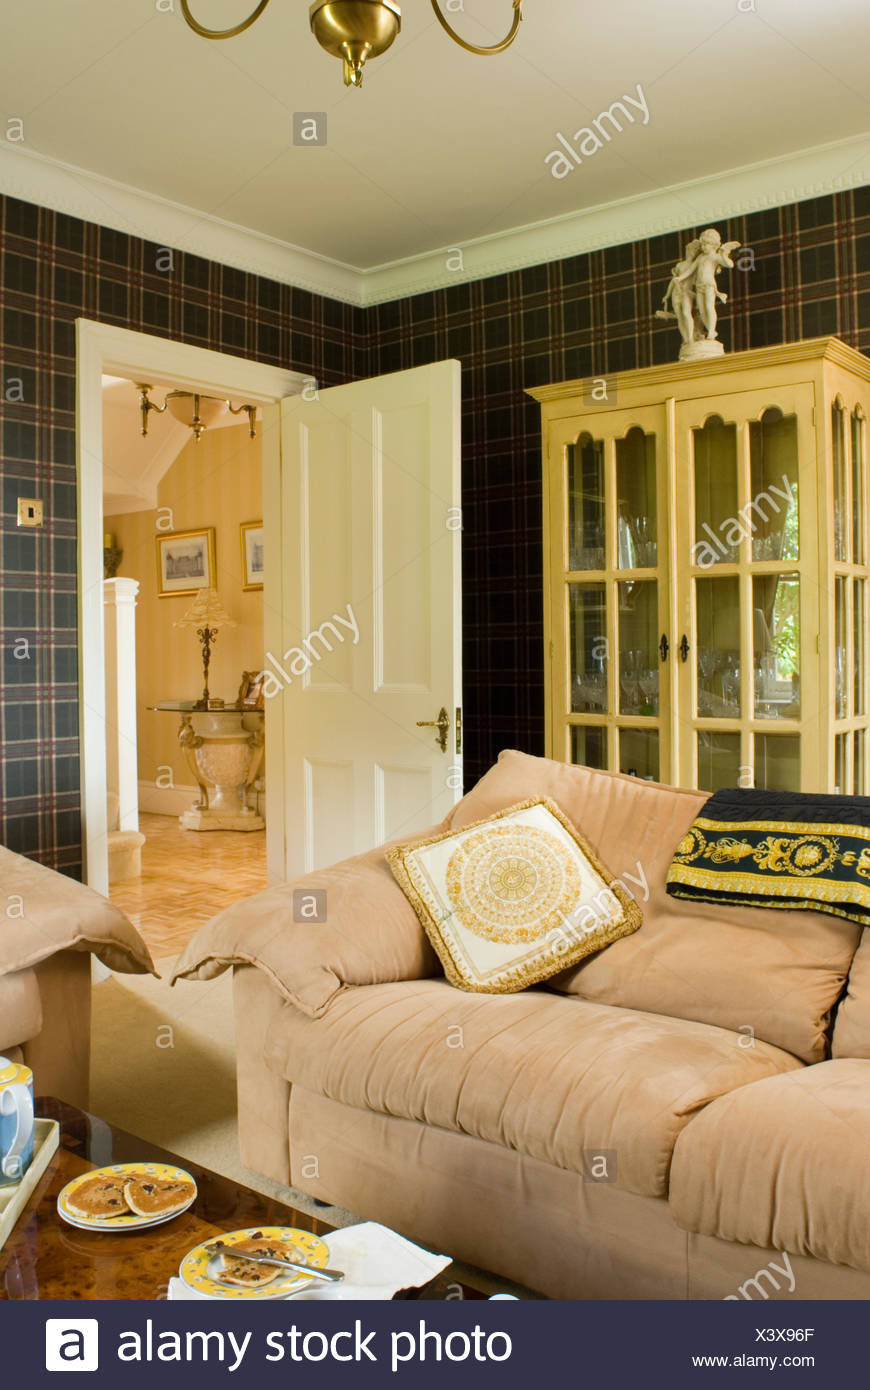 Cream velour sofa in front of glass-fronted cupboard in country living room - Stock Image